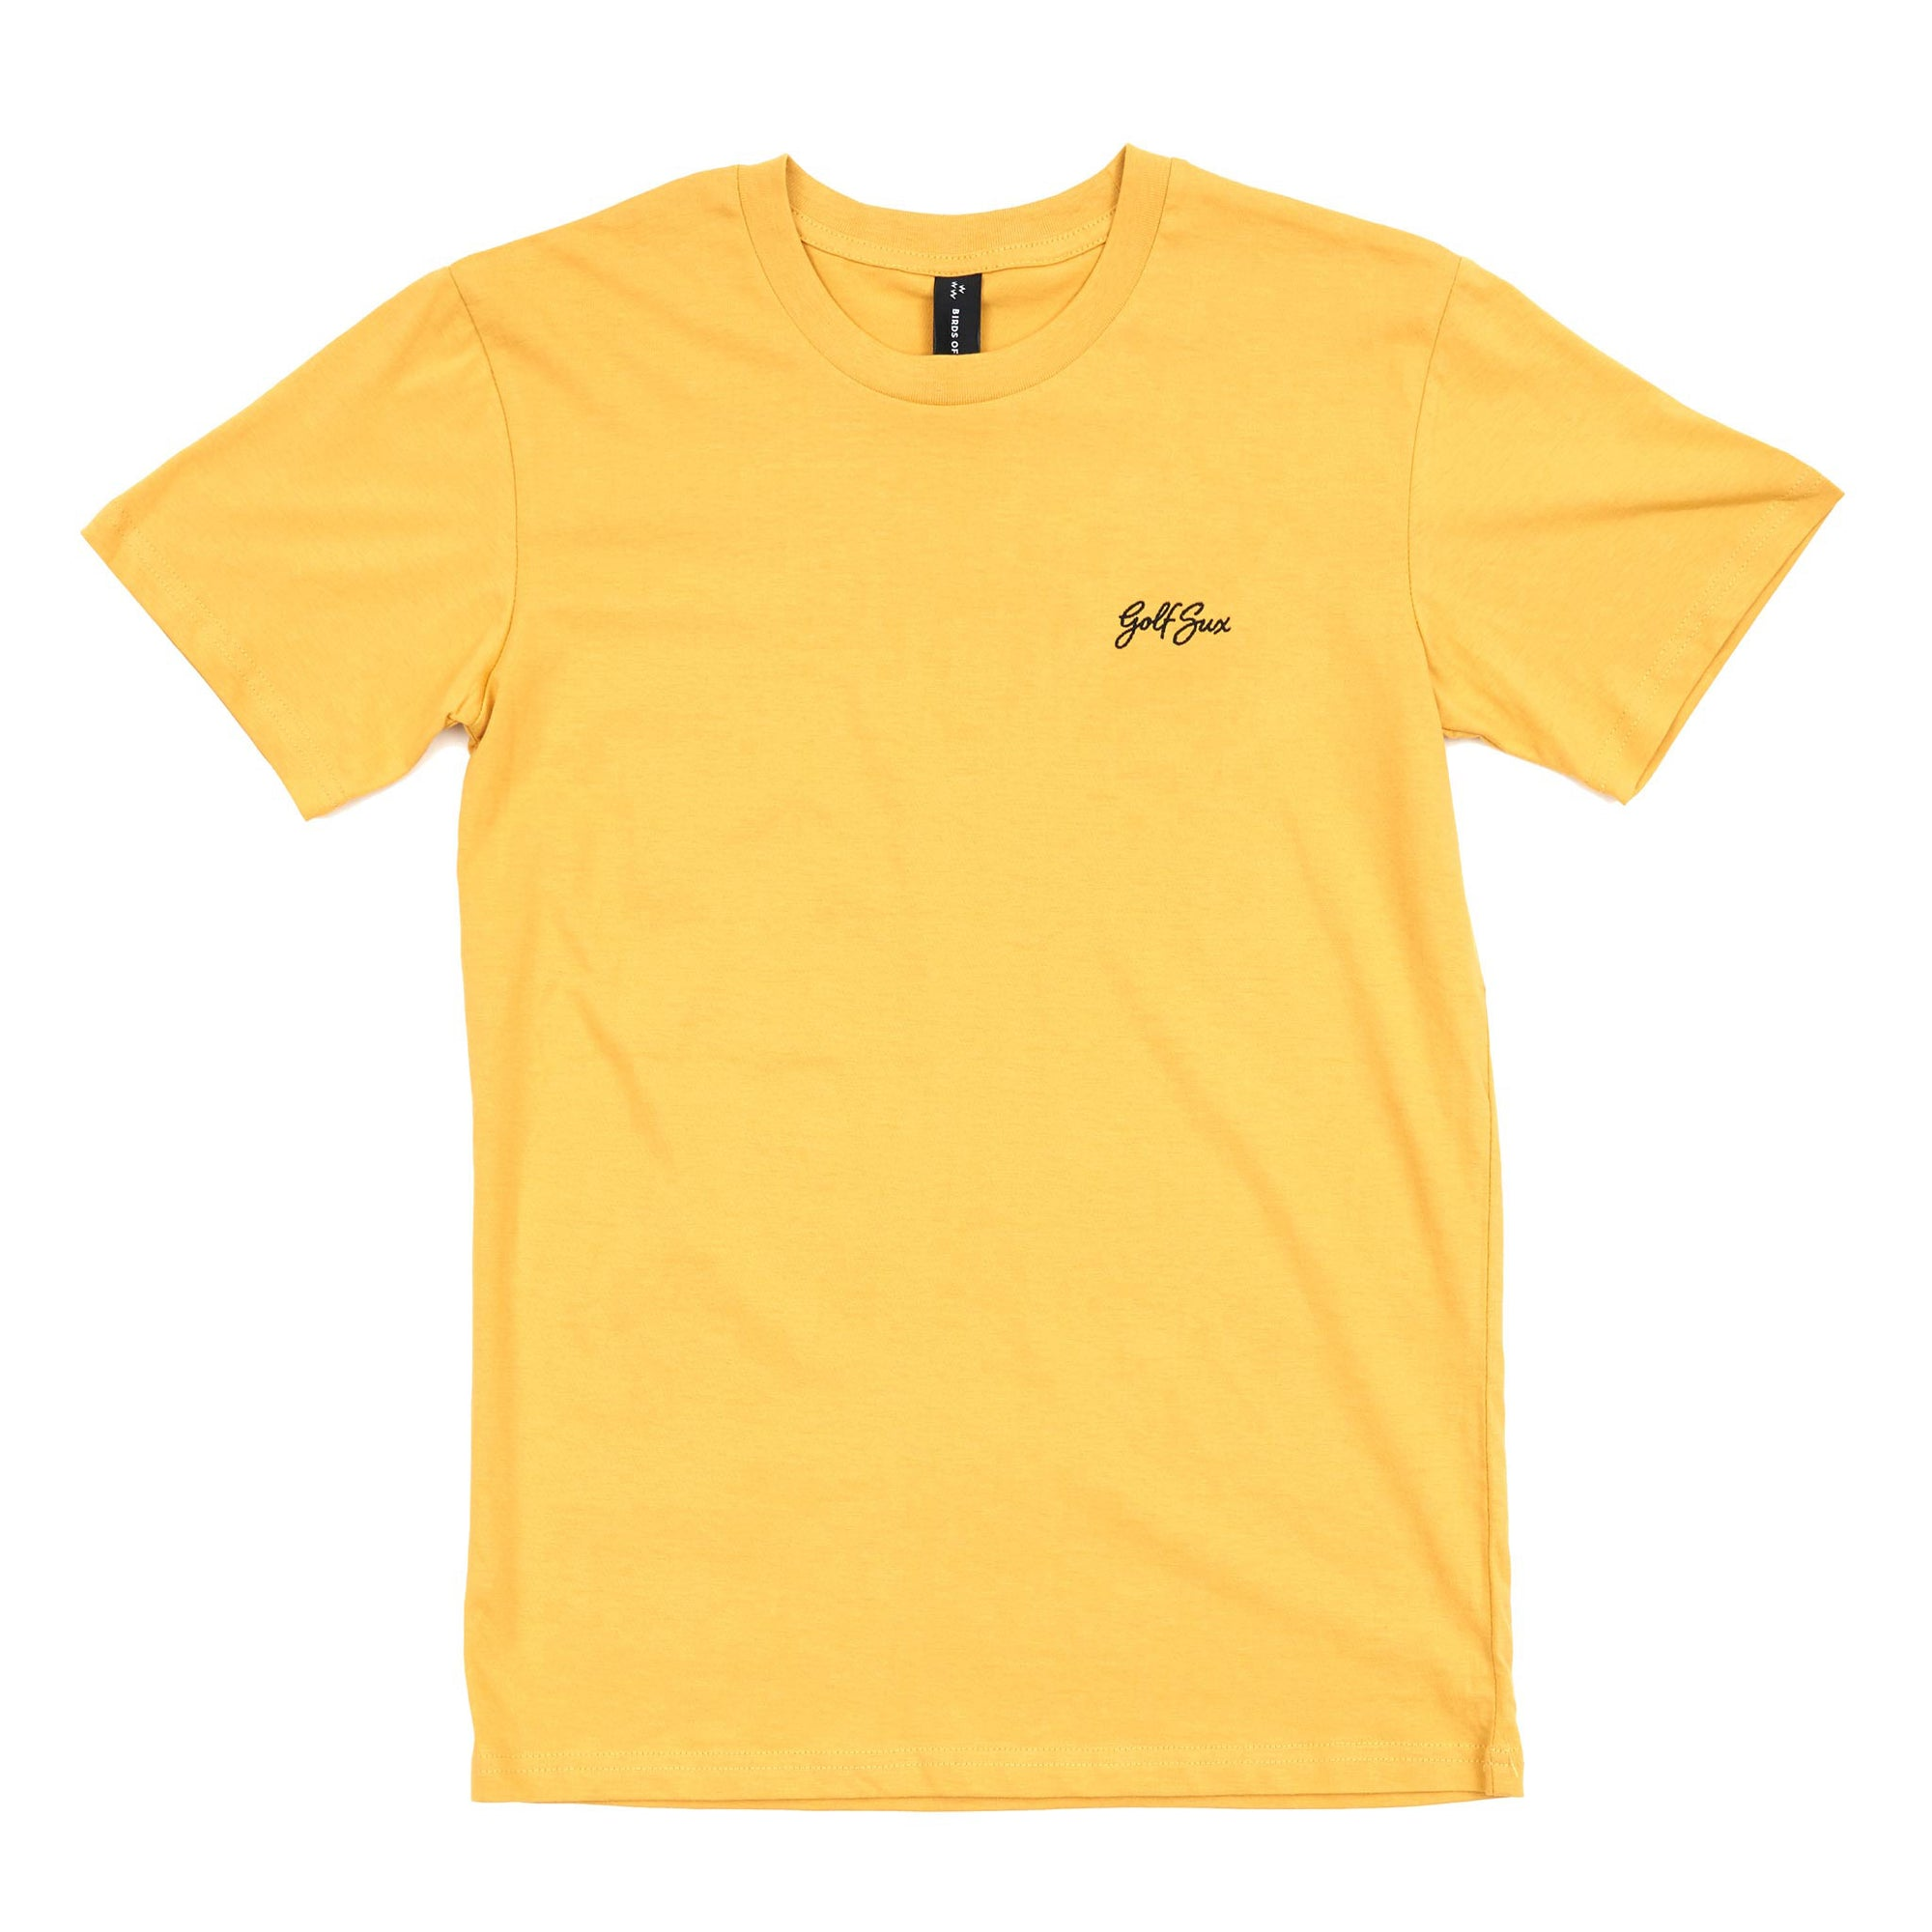 birds-of-condor-yellow-golf-sux-tee-shirt-front